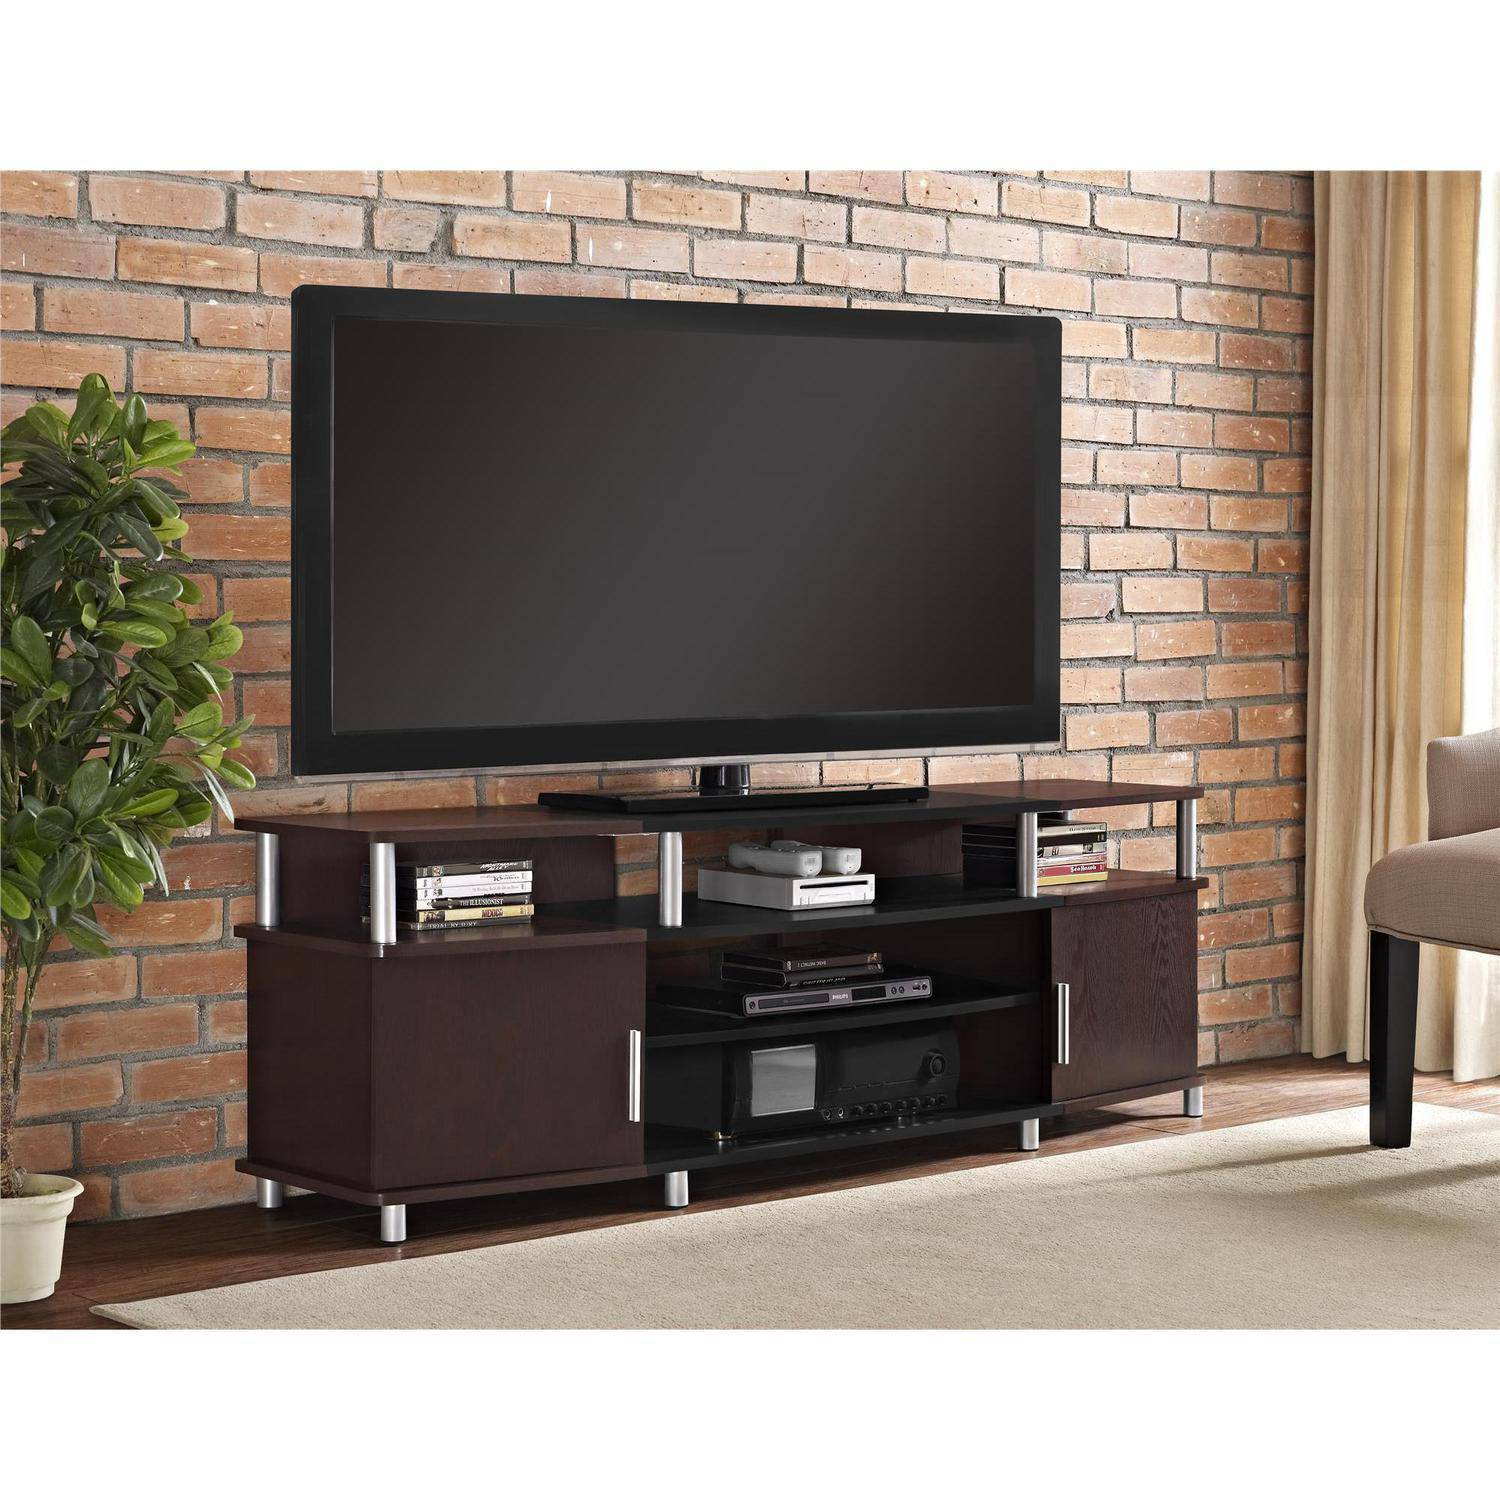 Carson XL Black and Cherry TV Stand for TVs up to 70""